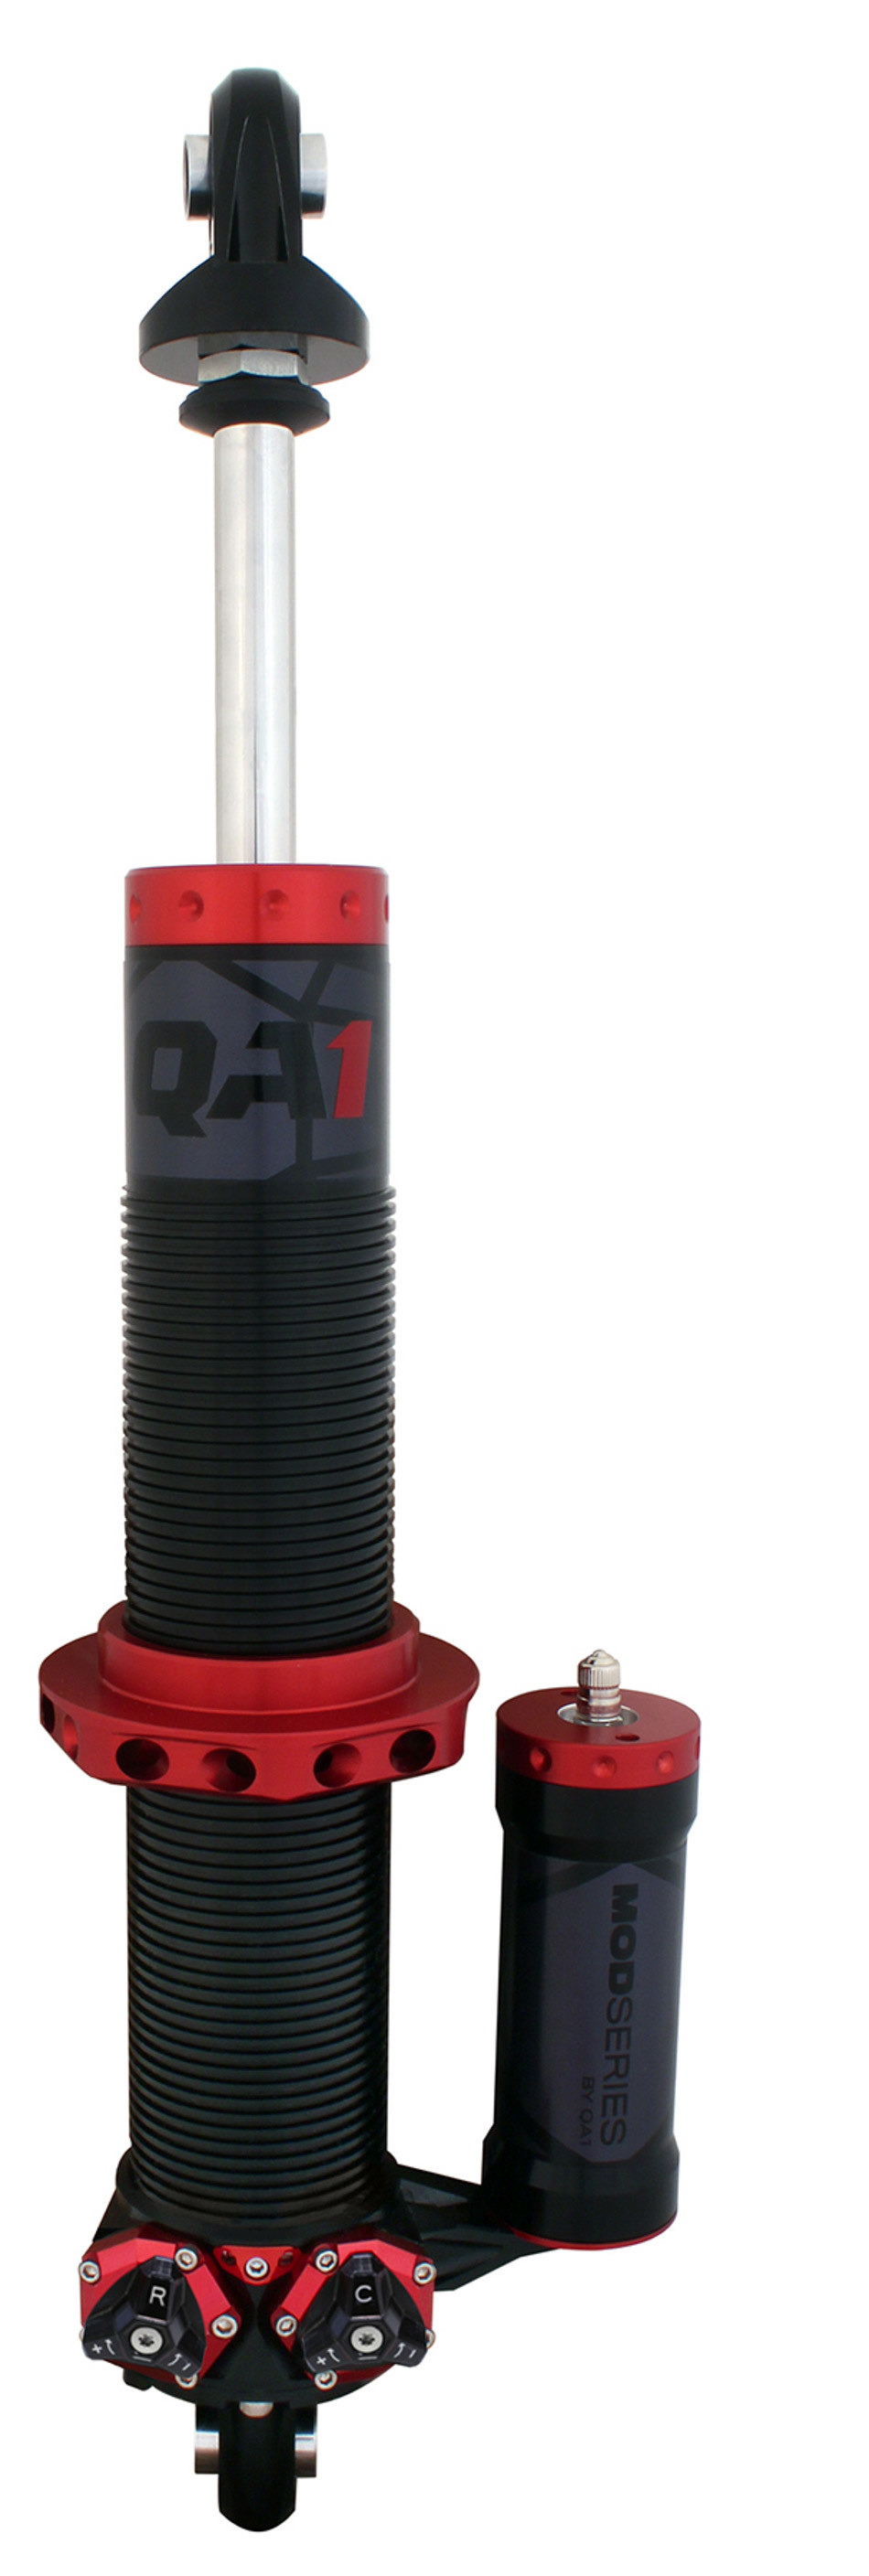 QA1 M711PR Shock, Mod Series, Twintube, 12.88 in Compressed / 19.50 in Extended, 2.00 in OD, Double Adjustable, Aluminum, Black Anodize, Each